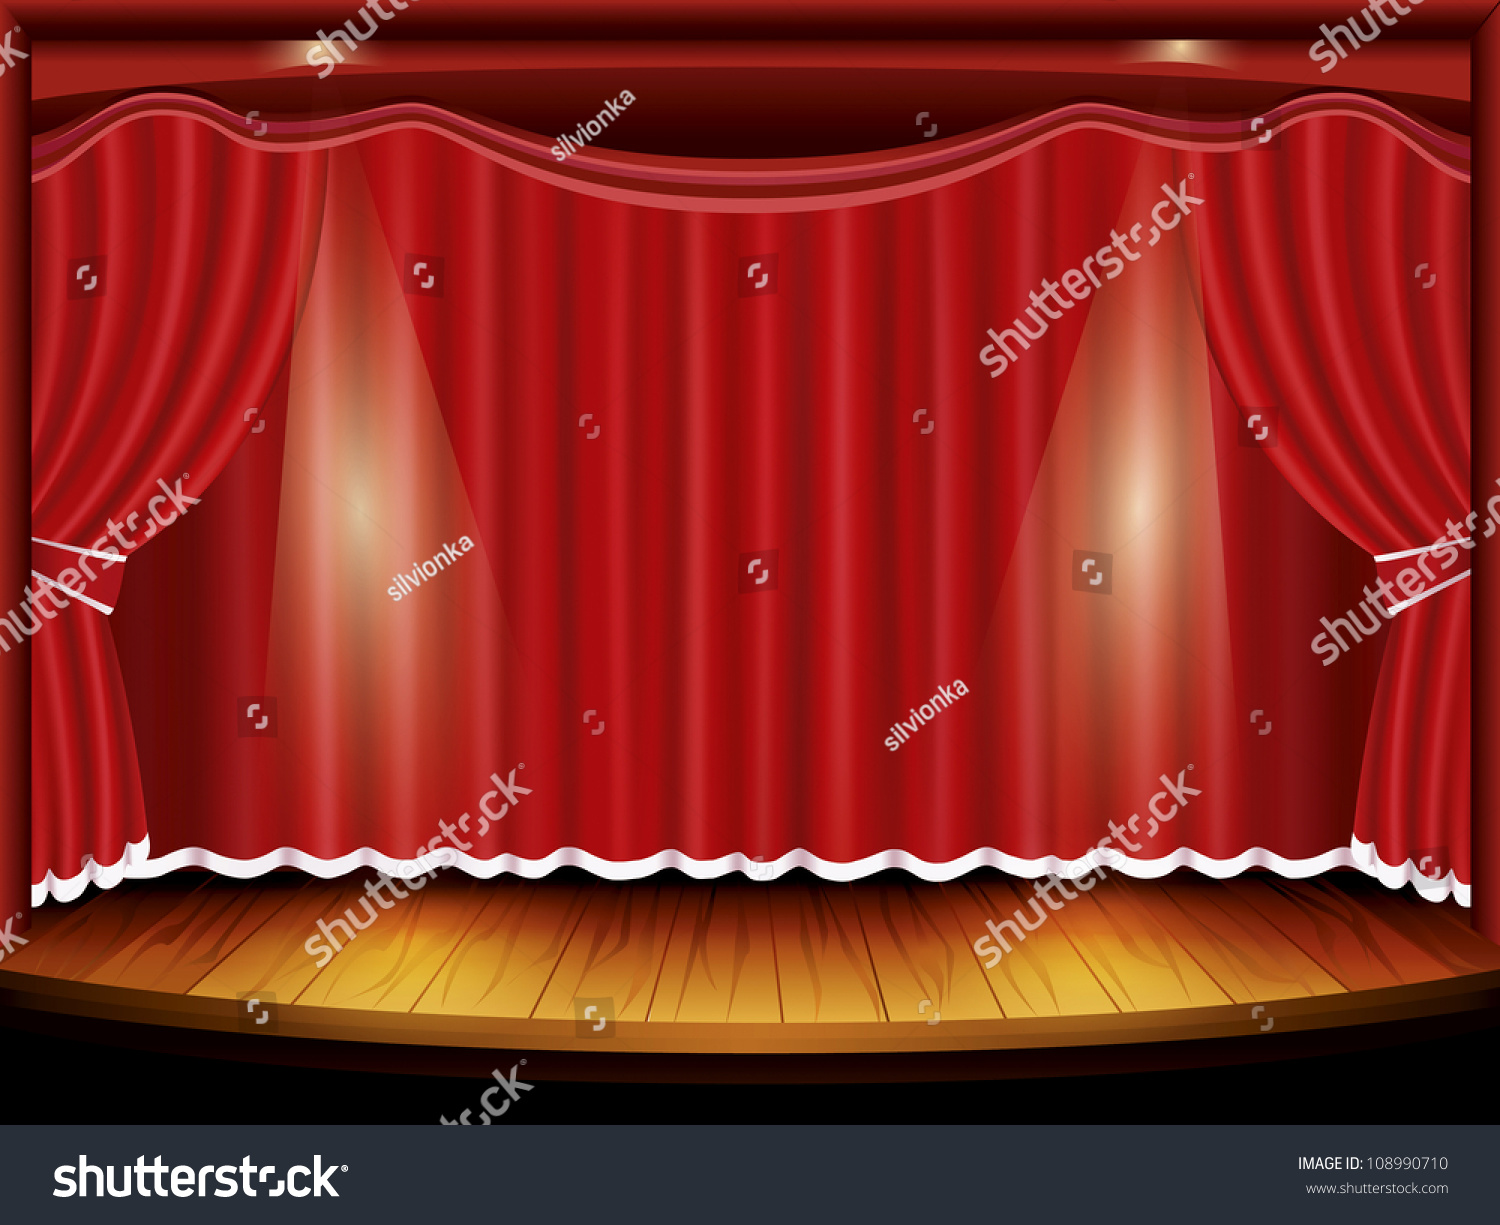 Red curtain spotlight - Theater Stage With Red Curtain And Spotlight Vector Illustration